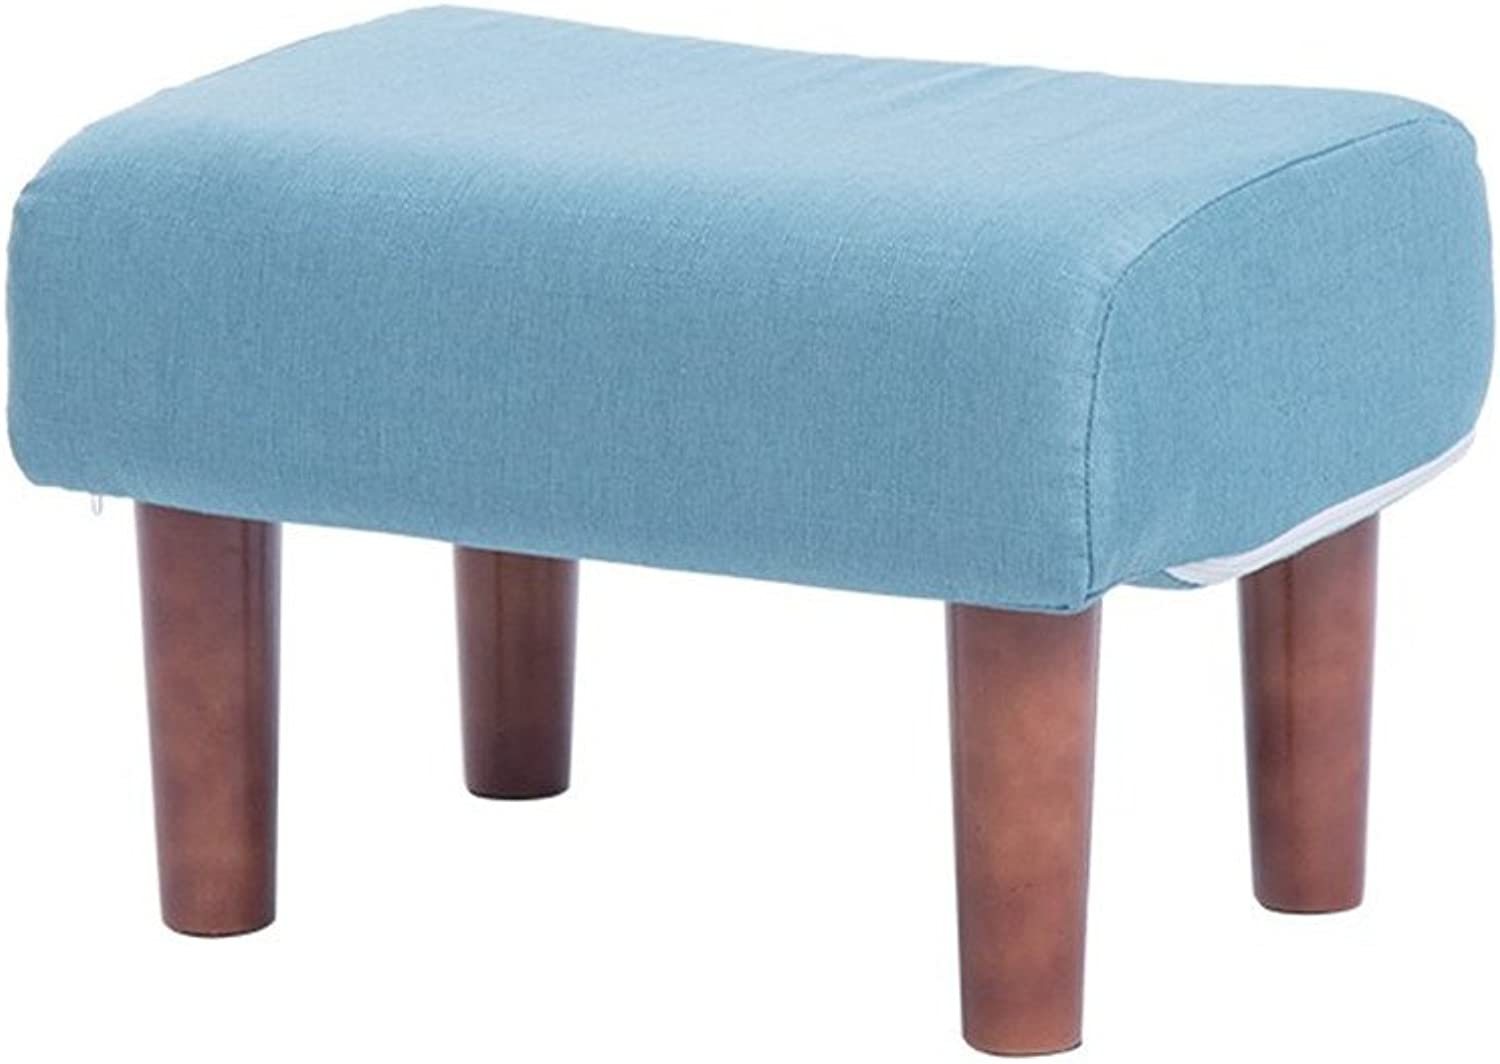 Fabric Sofa Stool,Creative Stool,Portable Non-Slip Sturdy Stools Strong Bearing Capacity for Office Living Room Bedroom-A 50x35x33cm(20x14x13inch)